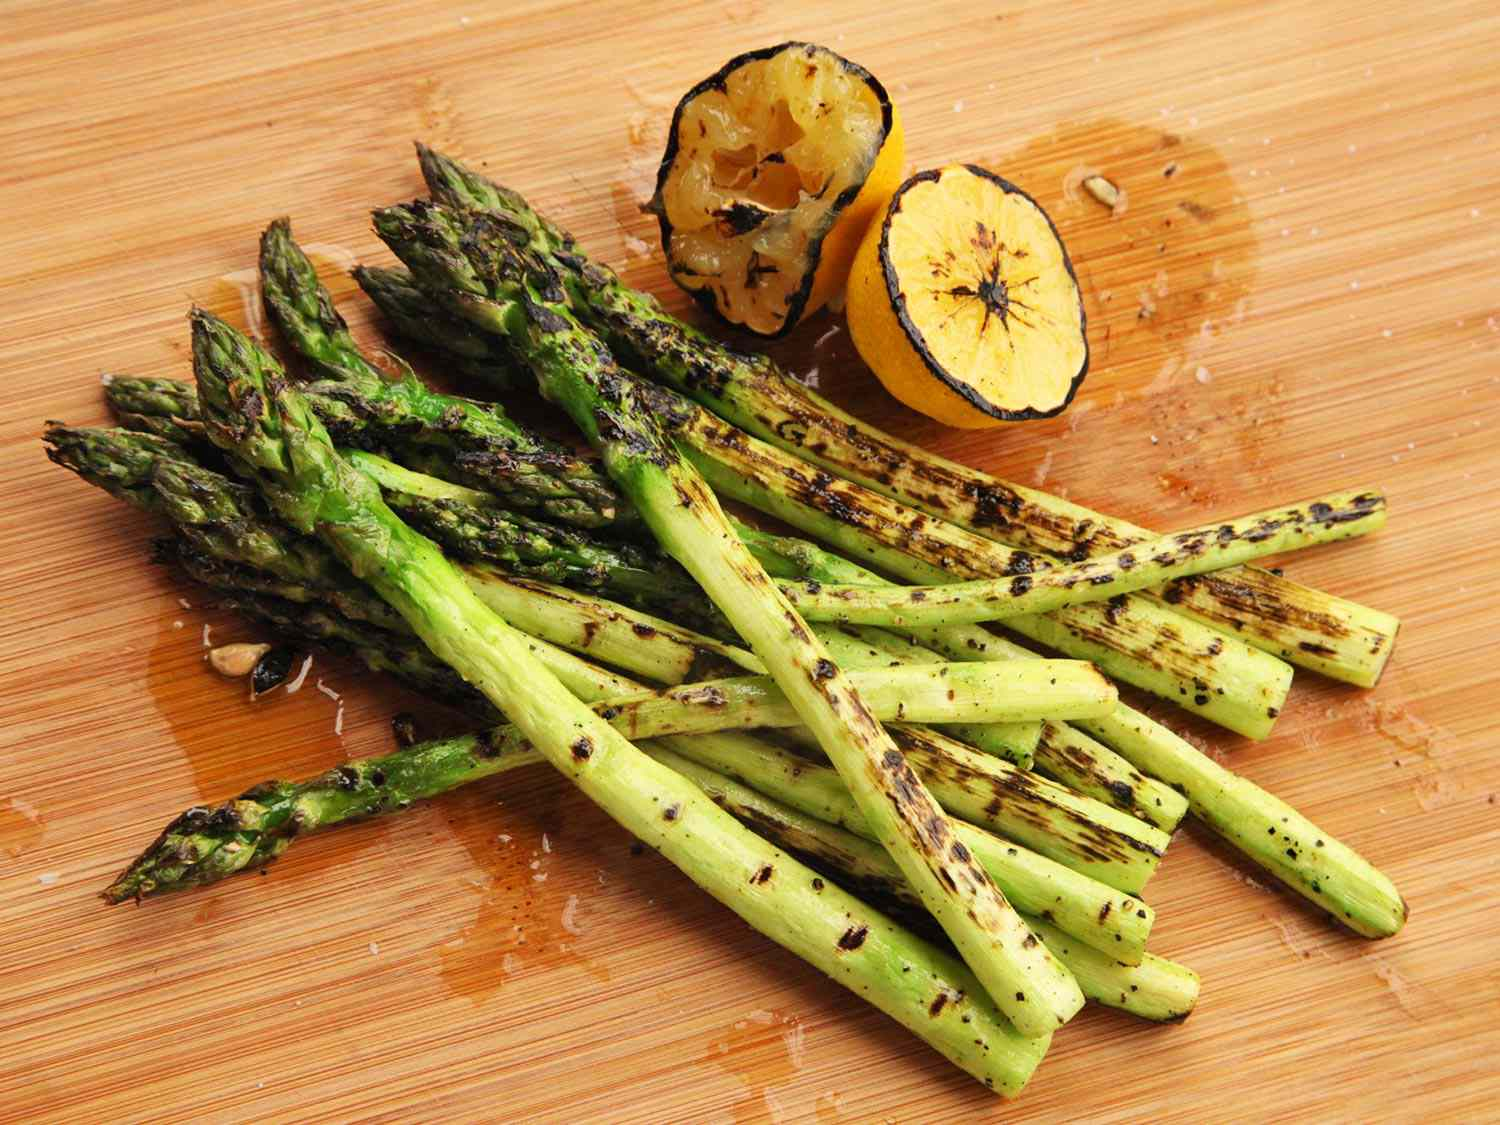 Grilled asparagus spears on a cutting board with charred lemon halves.